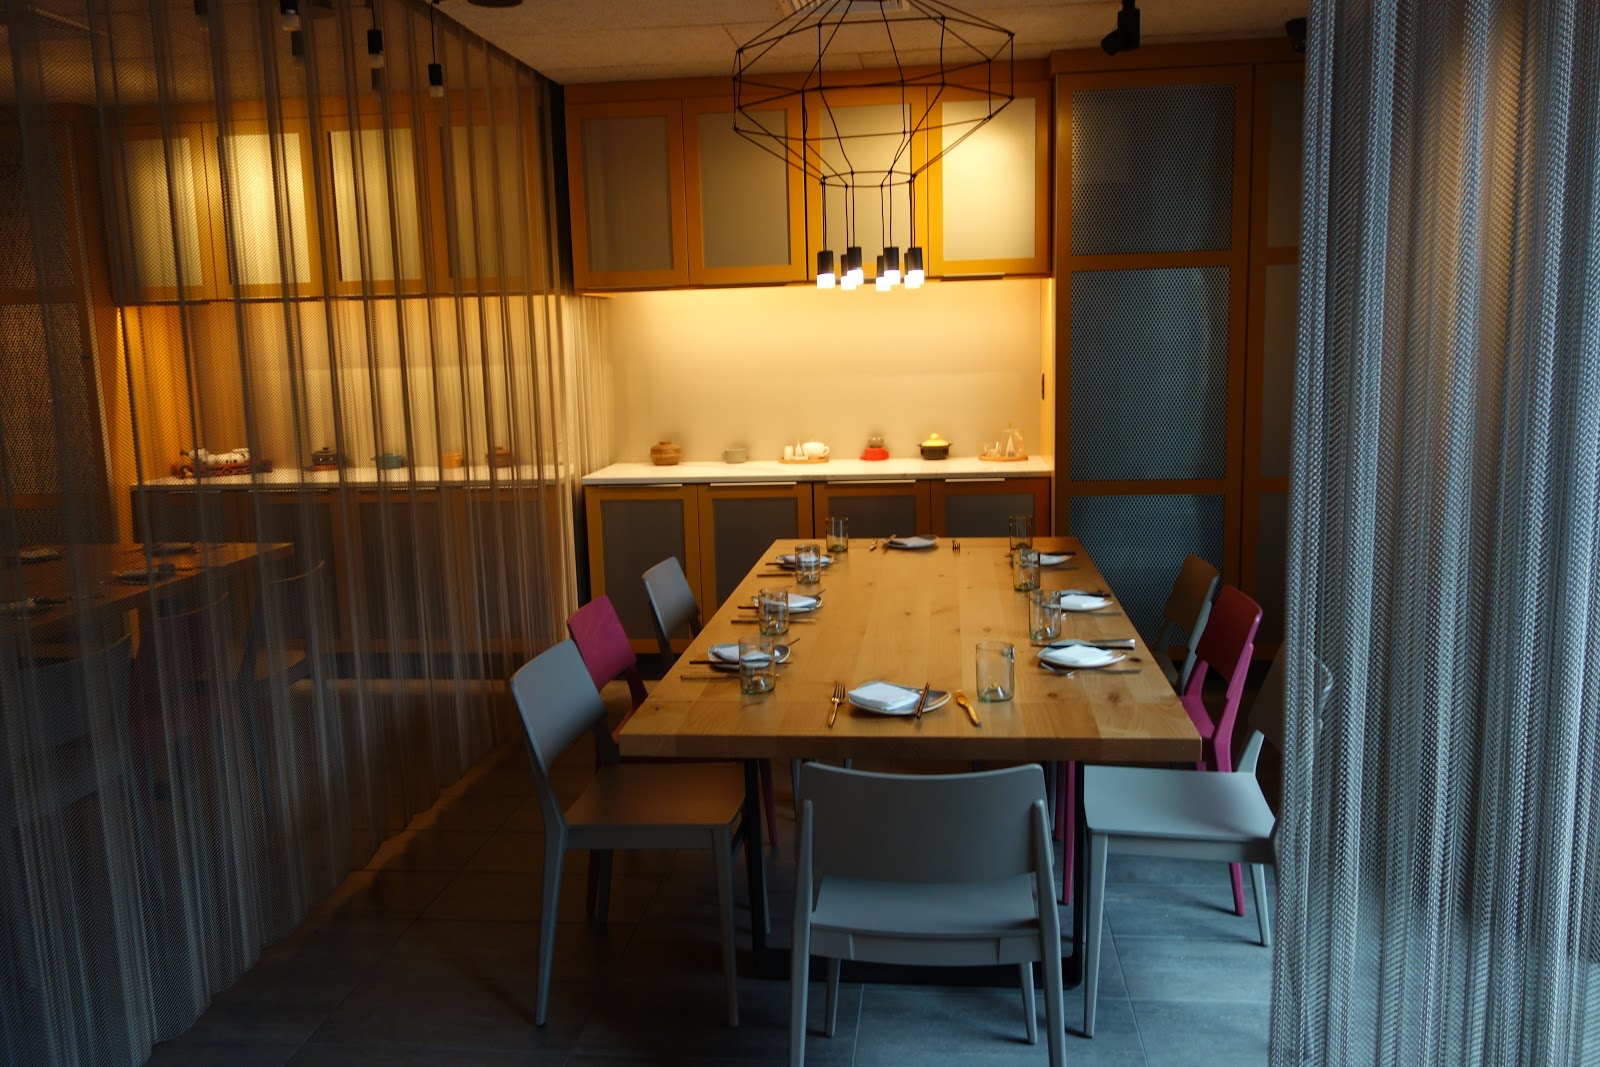 The Passionate Foodie: Sumiao Hunan Kitchen: An Impressive